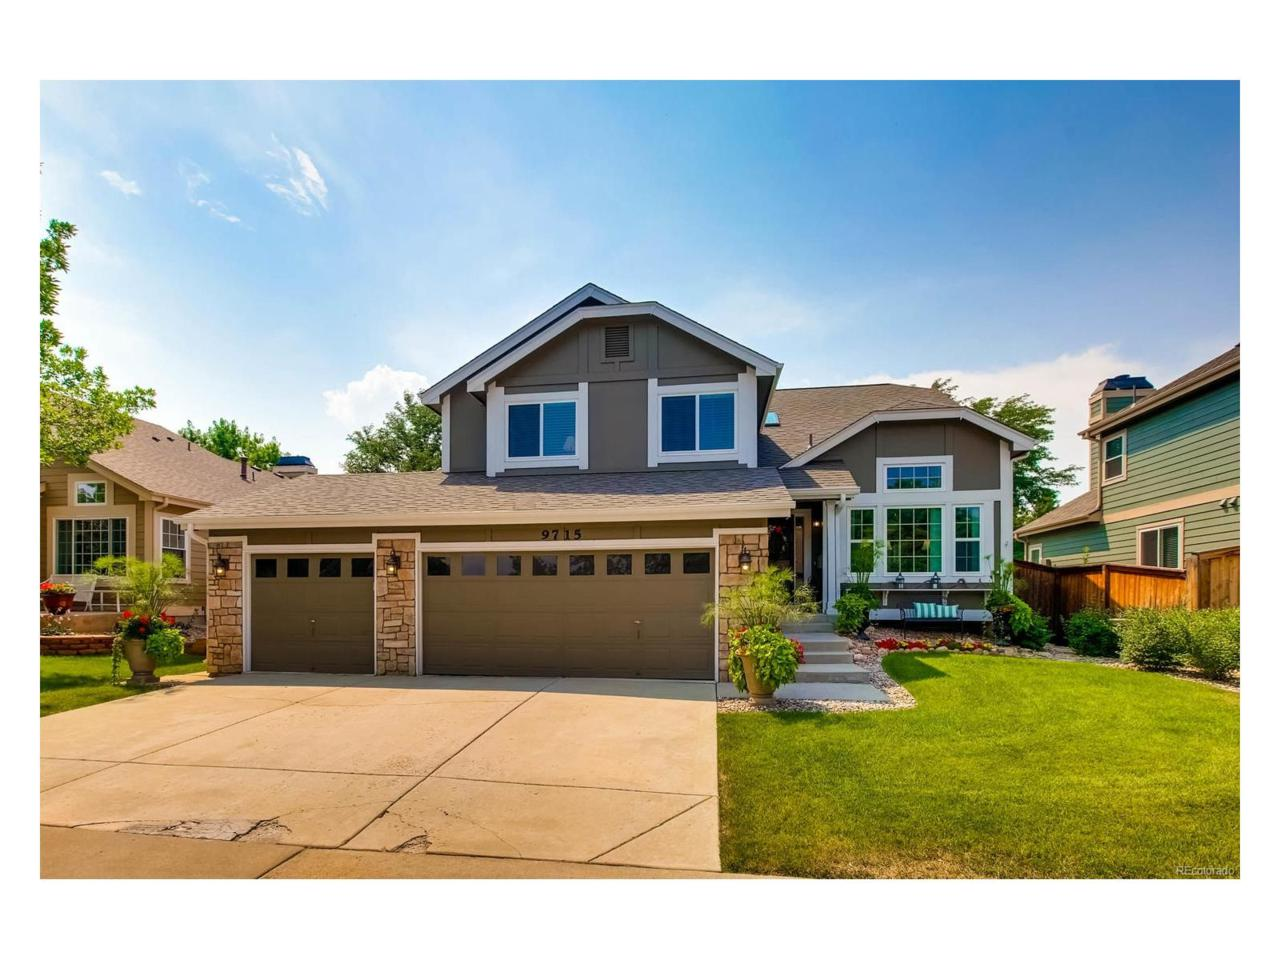 9715 Wedgewood Drive, Highlands Ranch, CO 80126 (MLS #6175531) :: 8z Real Estate